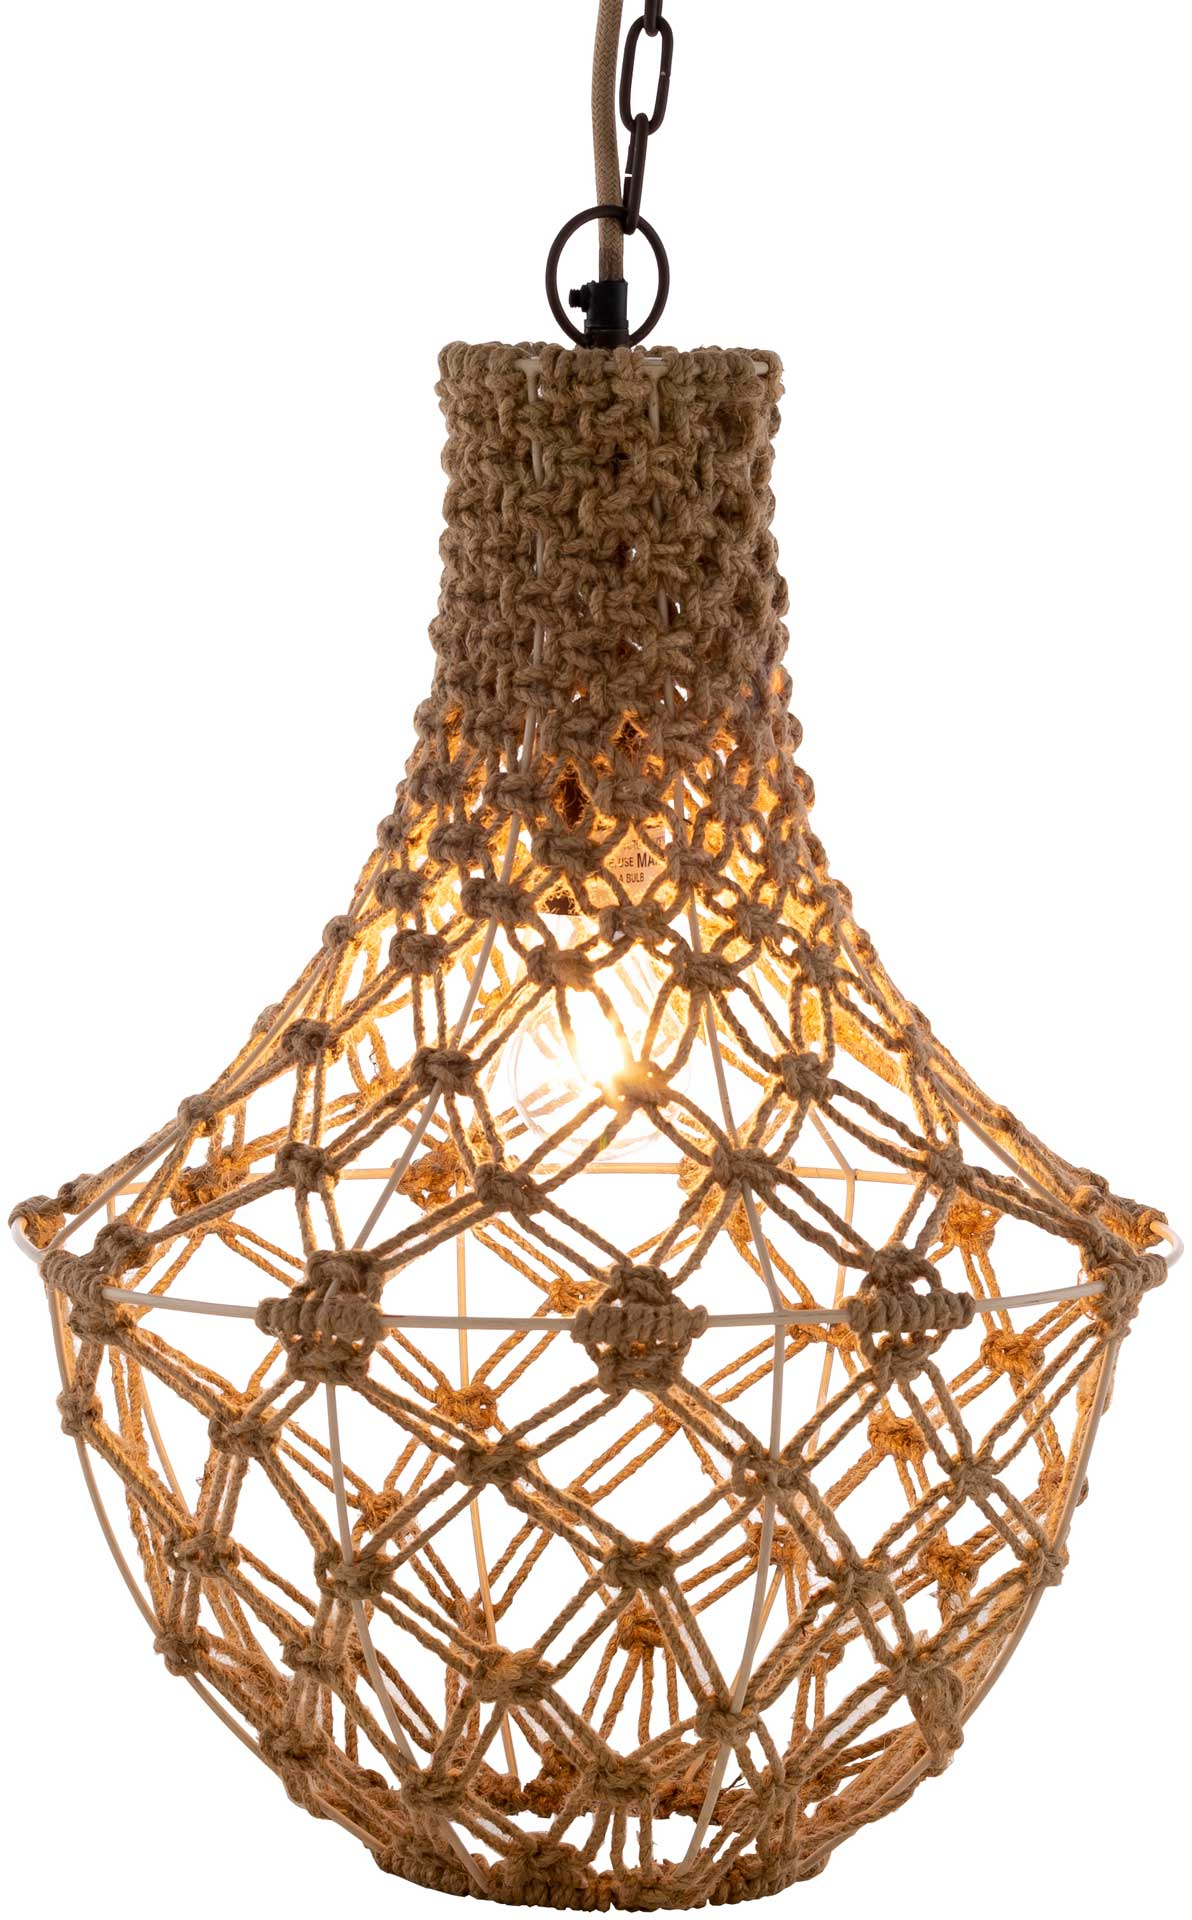 Kairo Ceiling Lamp Natural/Off-White